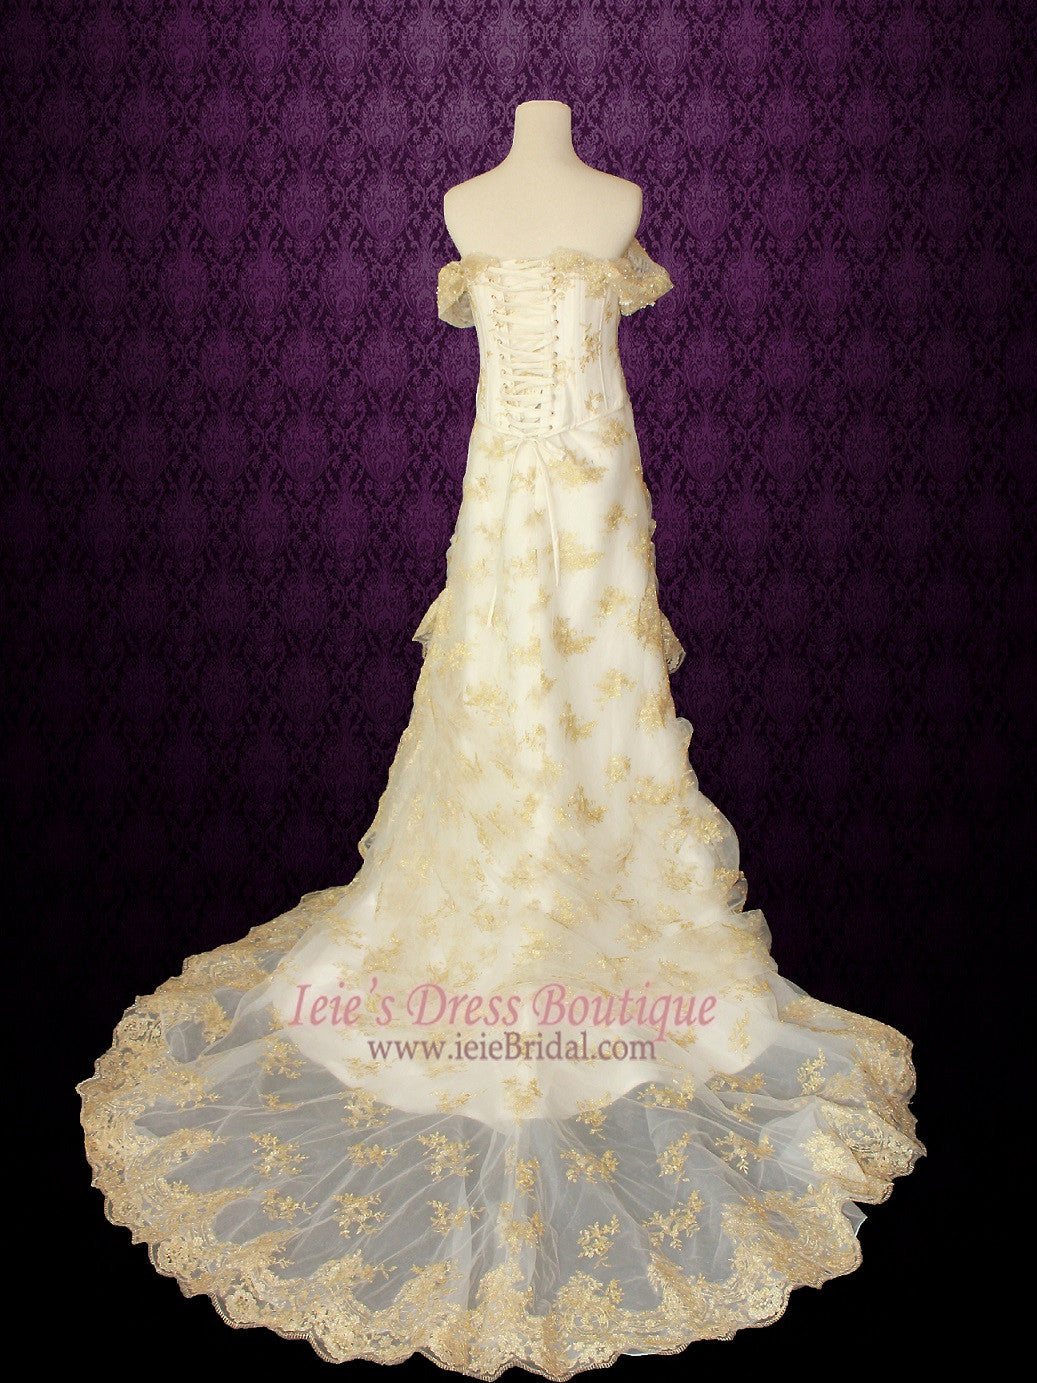 3 Piece Retro Fantasy Medieval Gold Lace Overlay Wedding Dress Fantasy Wedding Dress| Ayleth